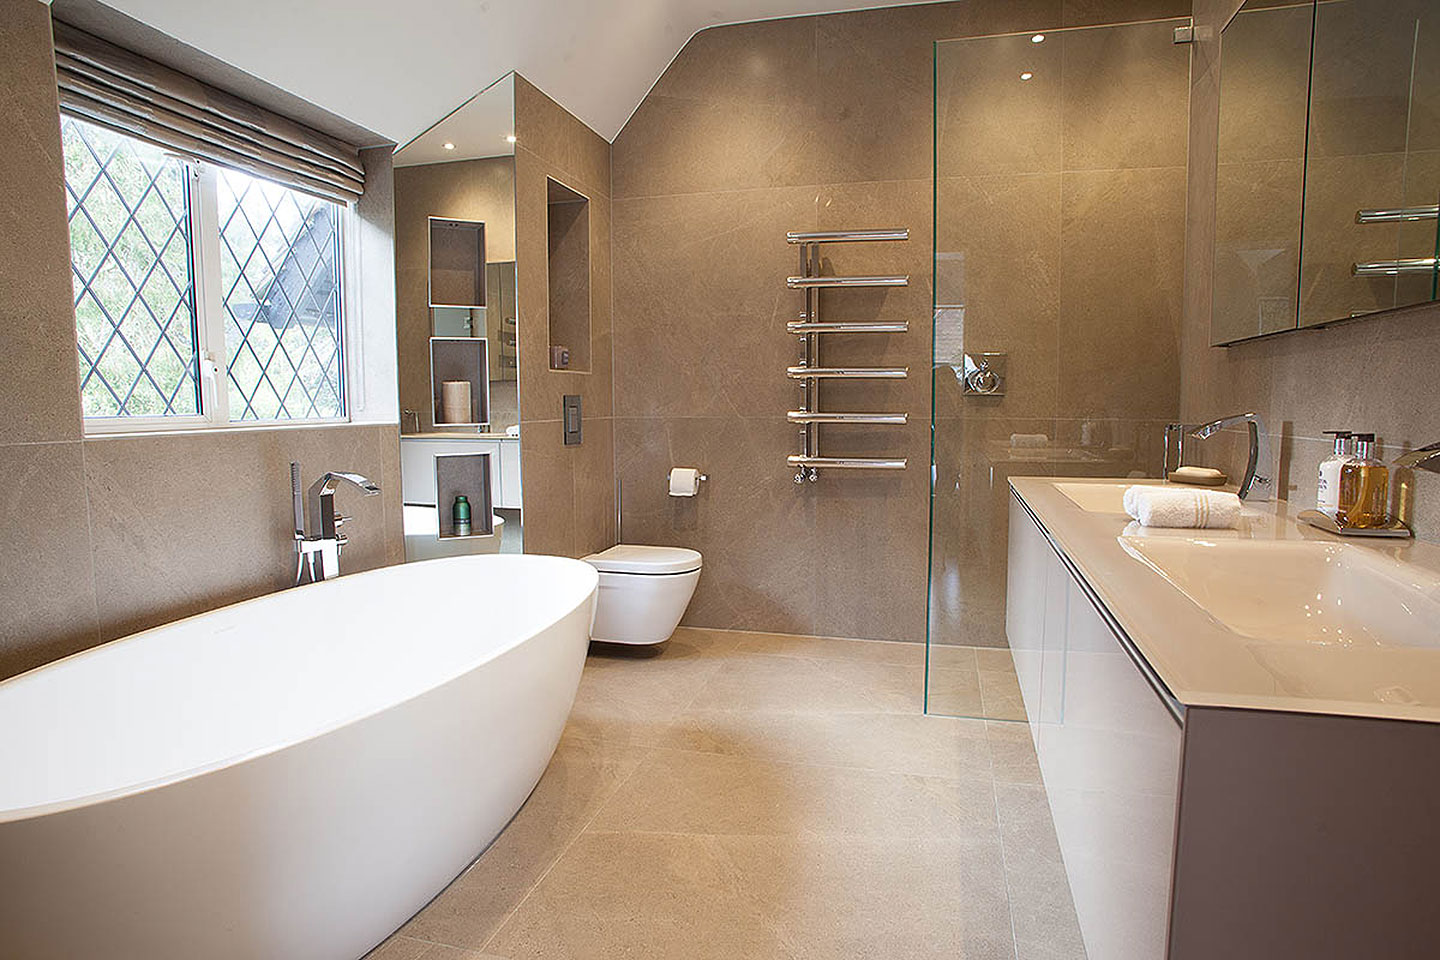 Bathrooms And Bedrooms In A North London Home Tiles Amp Baths Direct